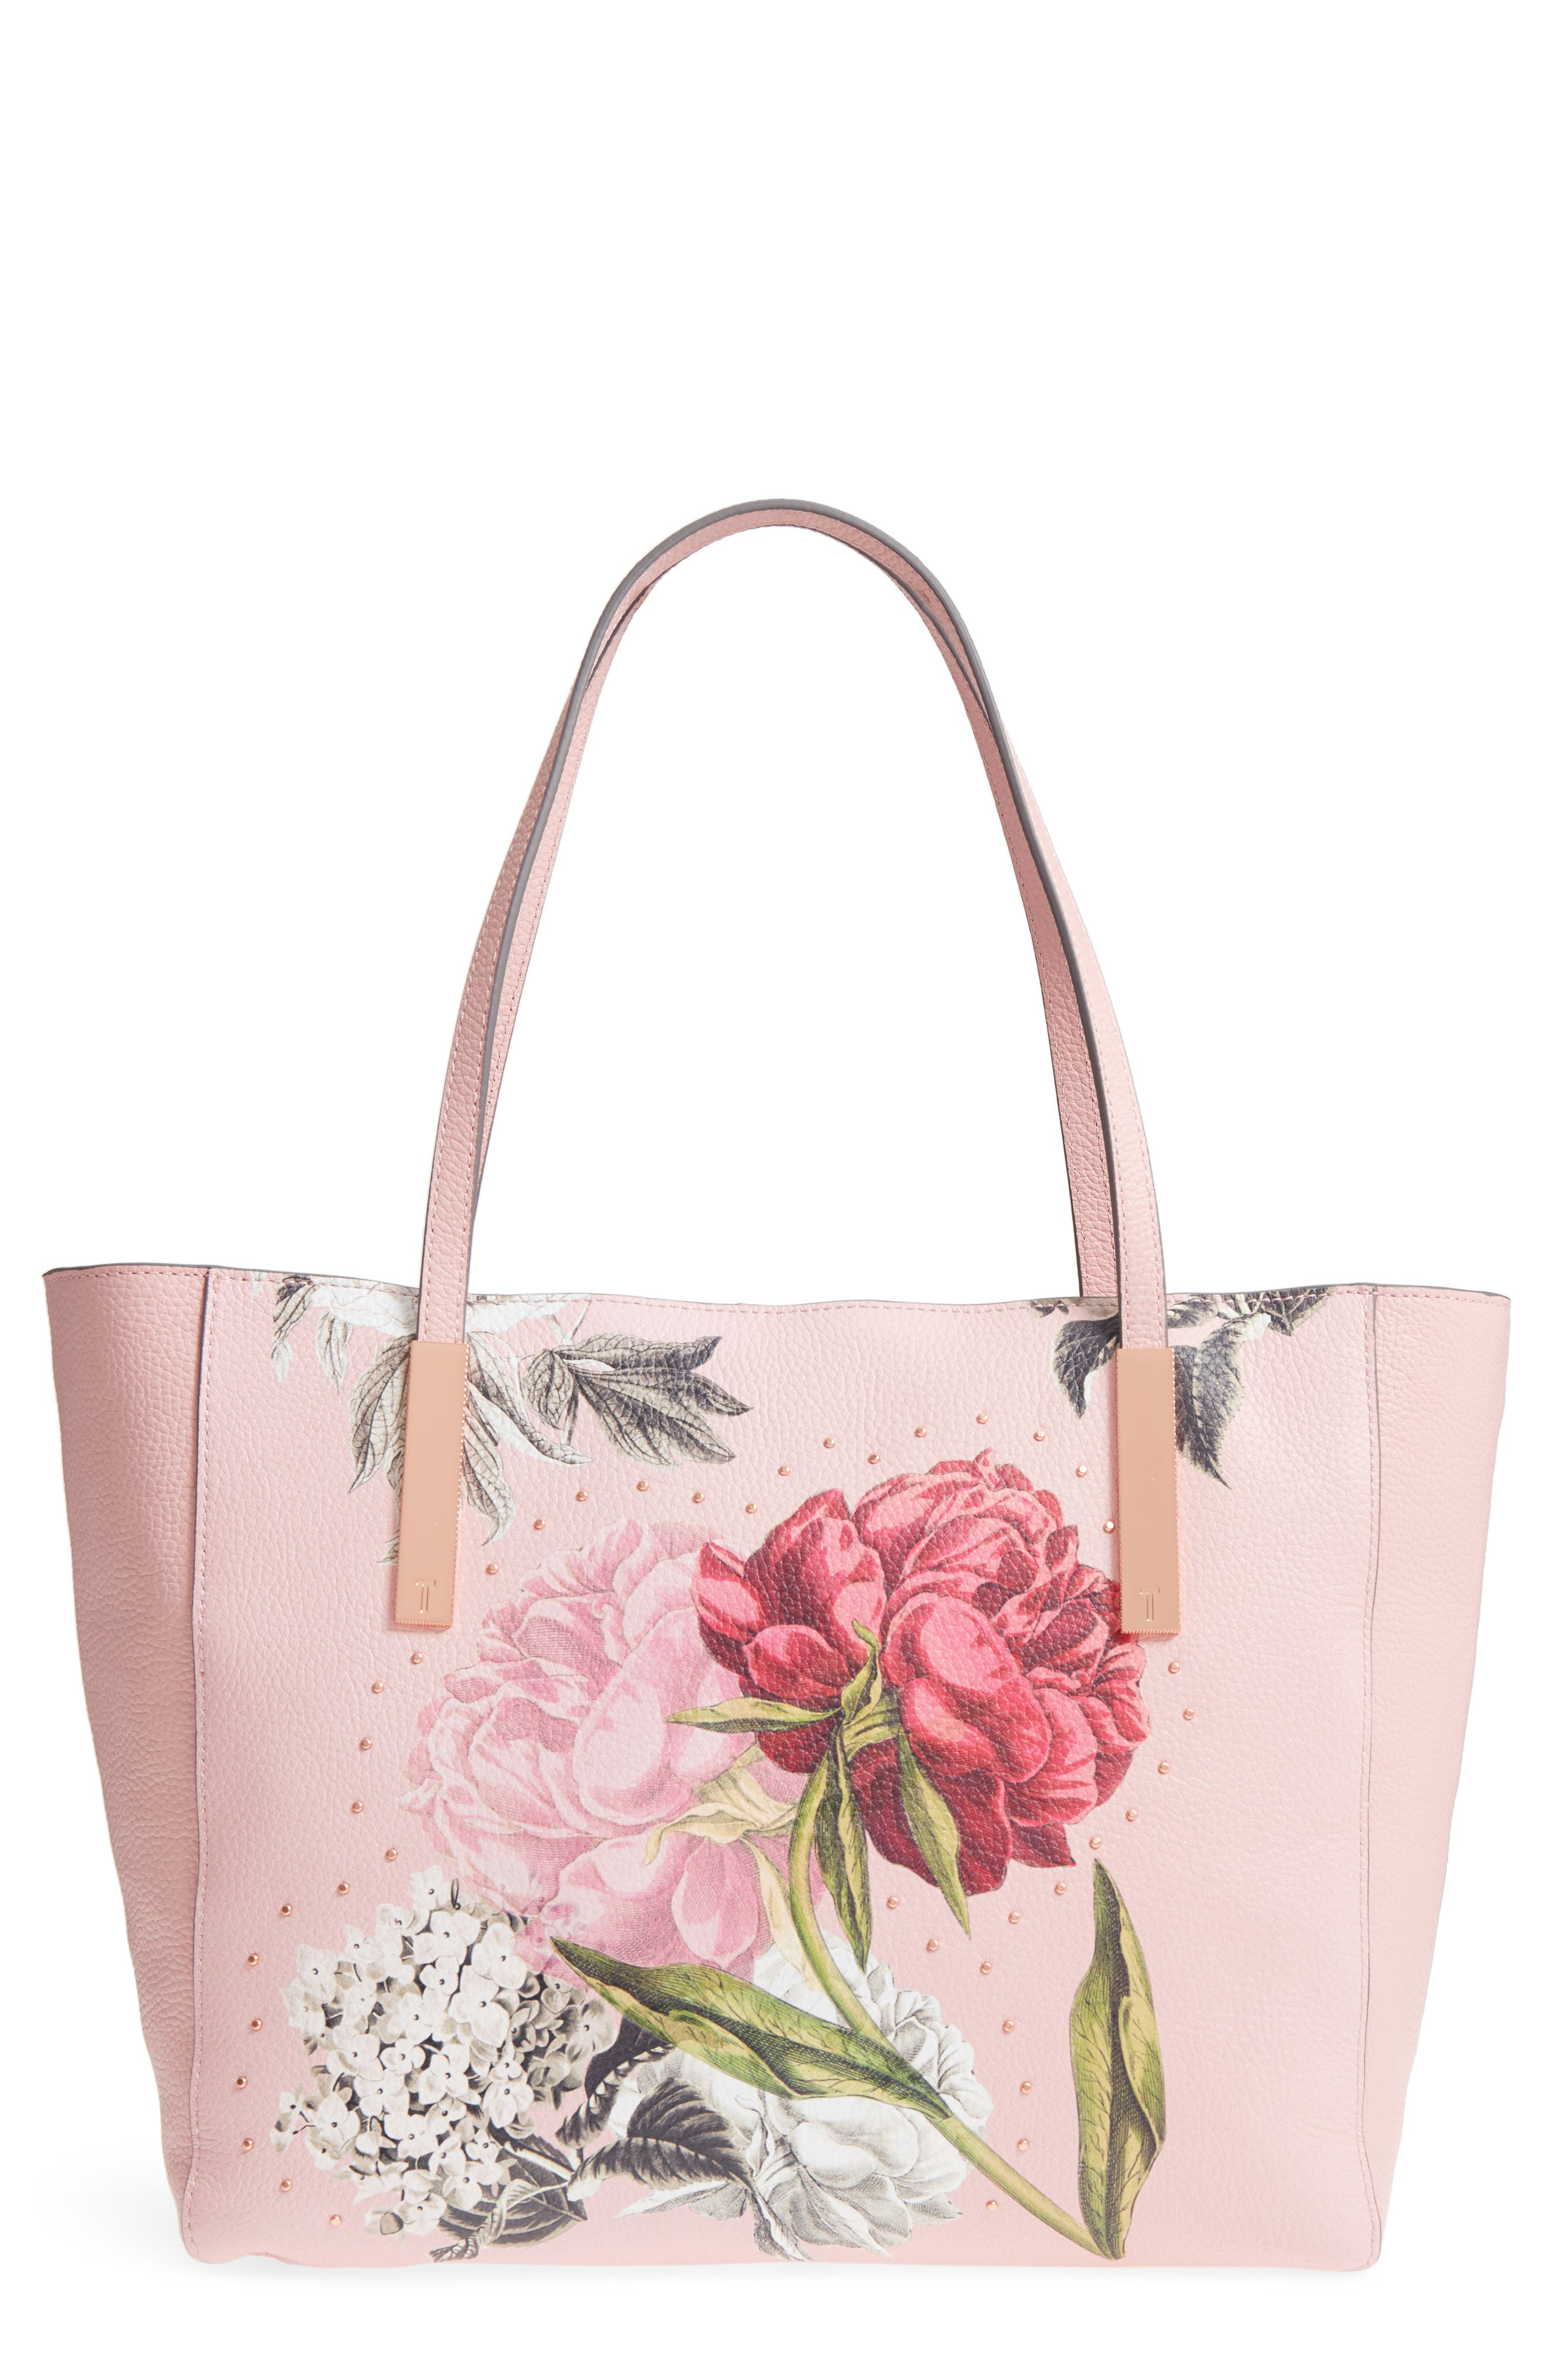 Palace Gardens Large Leather Tote,                             Main thumbnail 1, color,